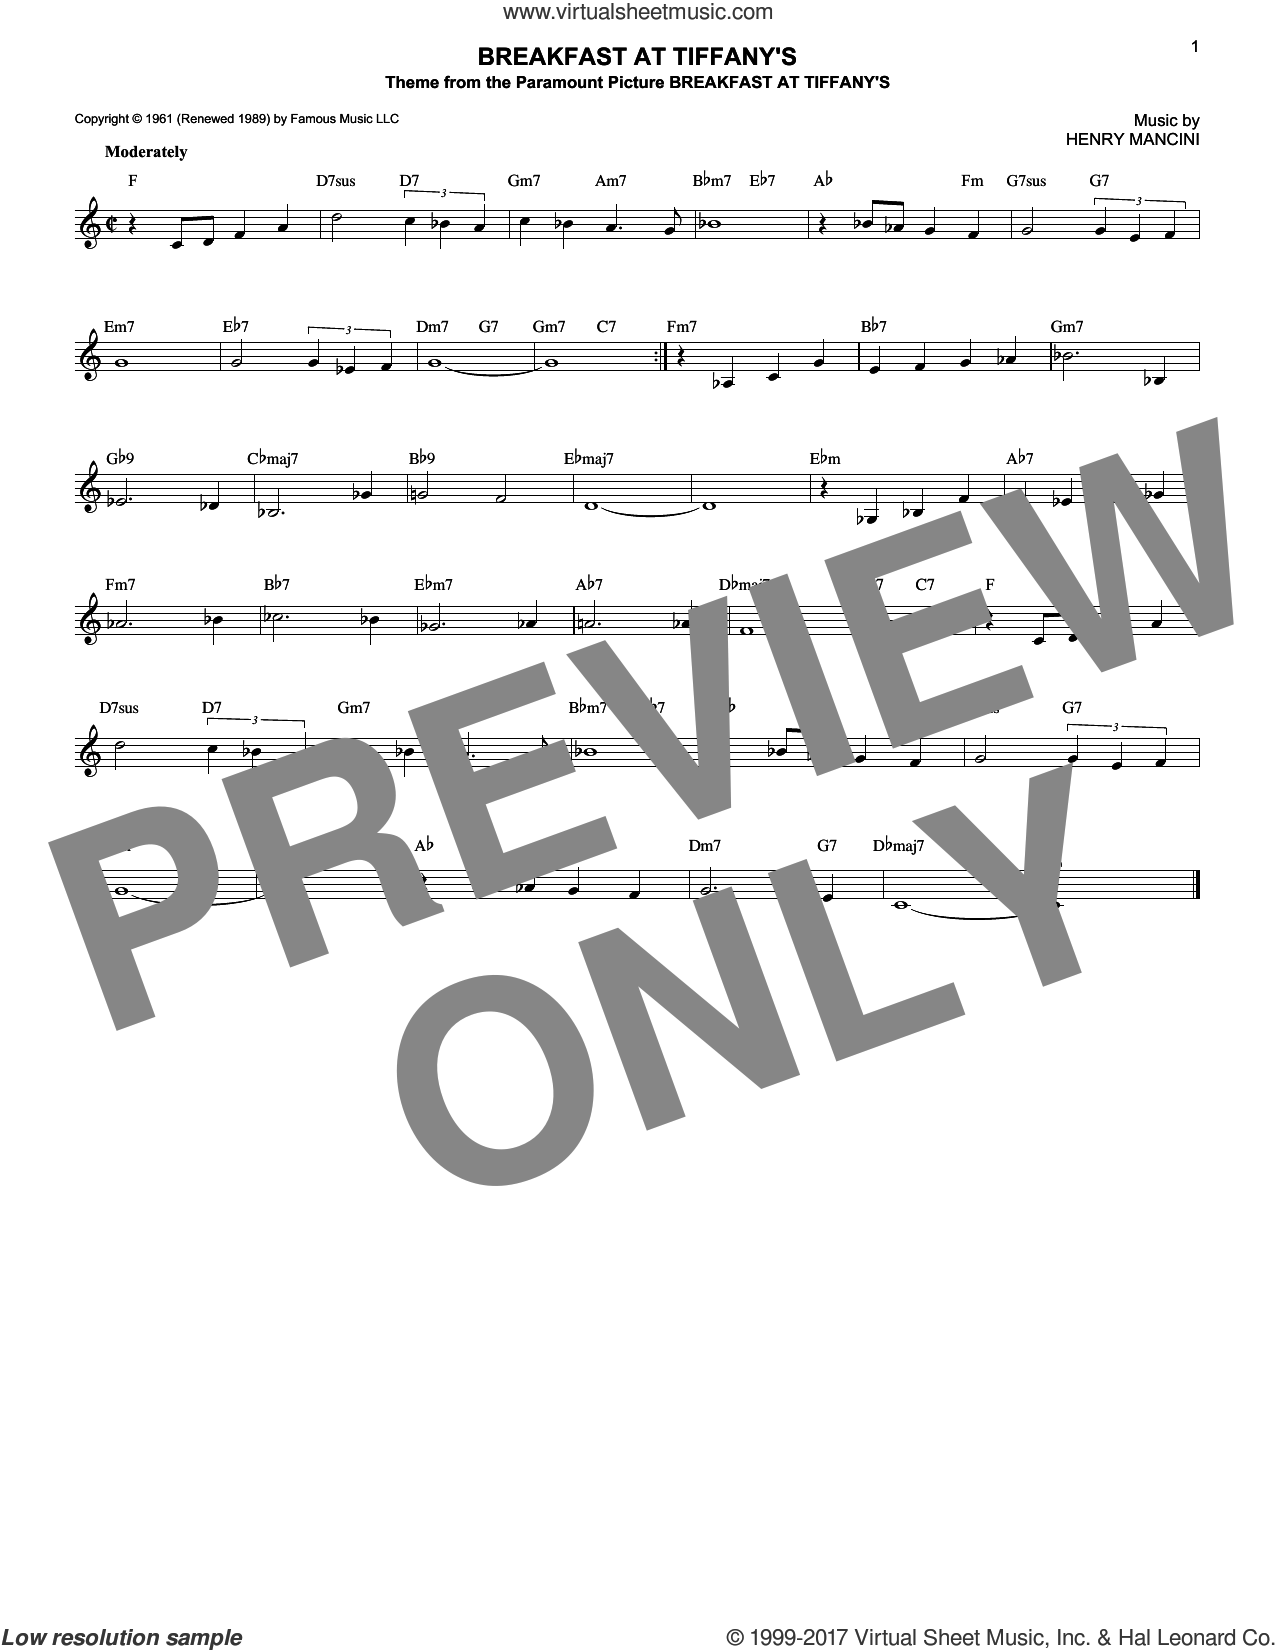 Breakfast At Tiffany's sheet music for voice and other instruments (fake book) by Henry Mancini, intermediate skill level